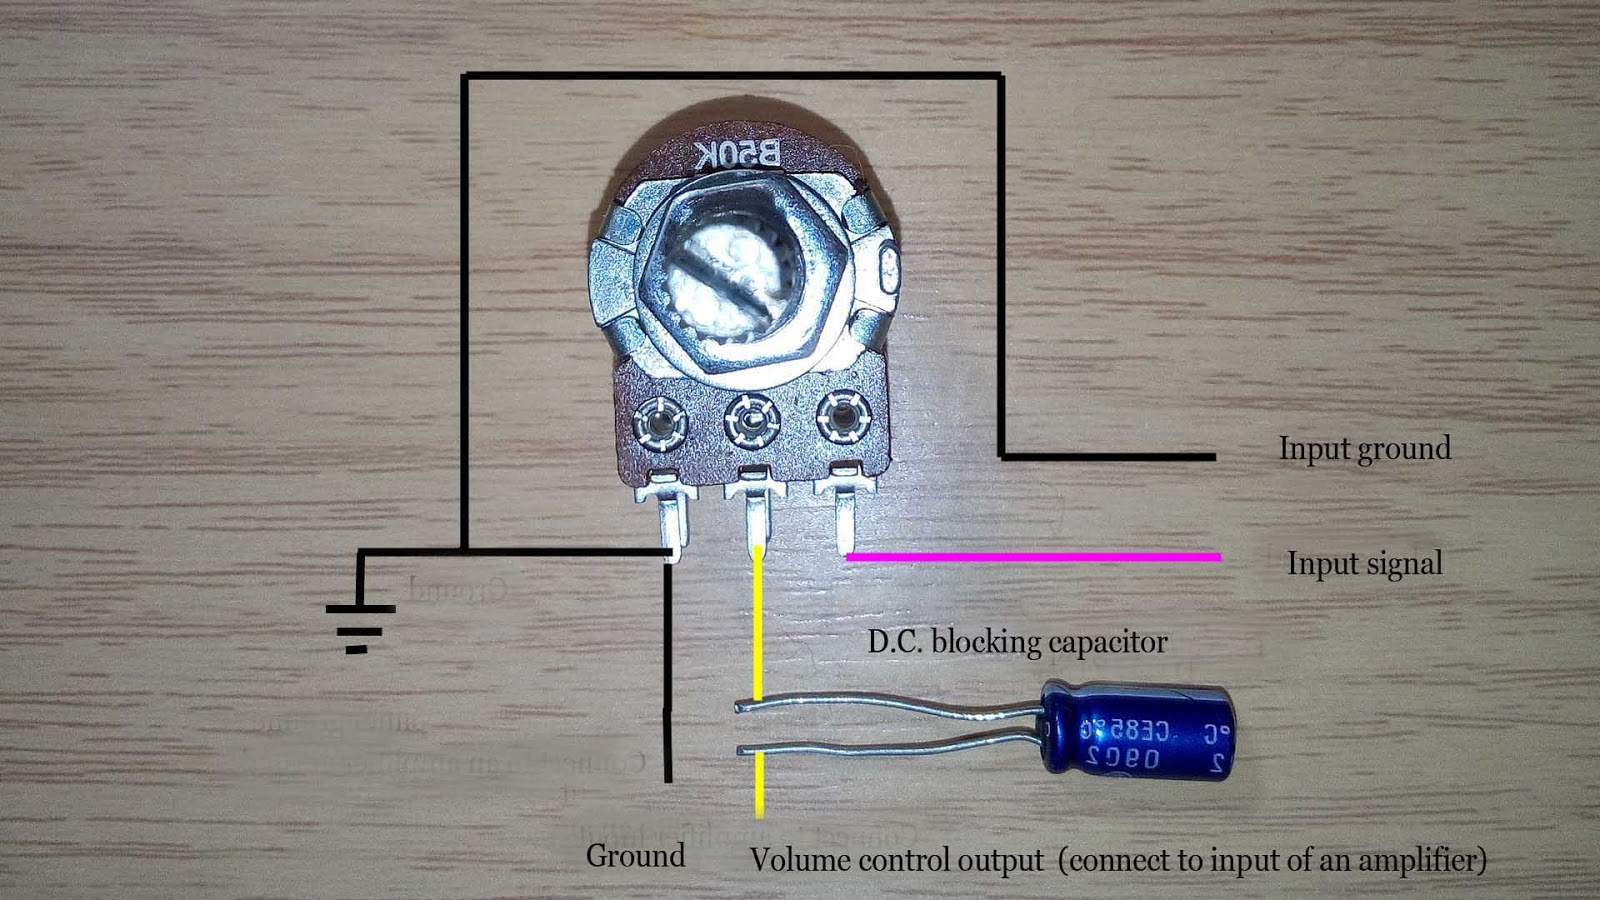 How To Connect Volume Control To An Amplifier